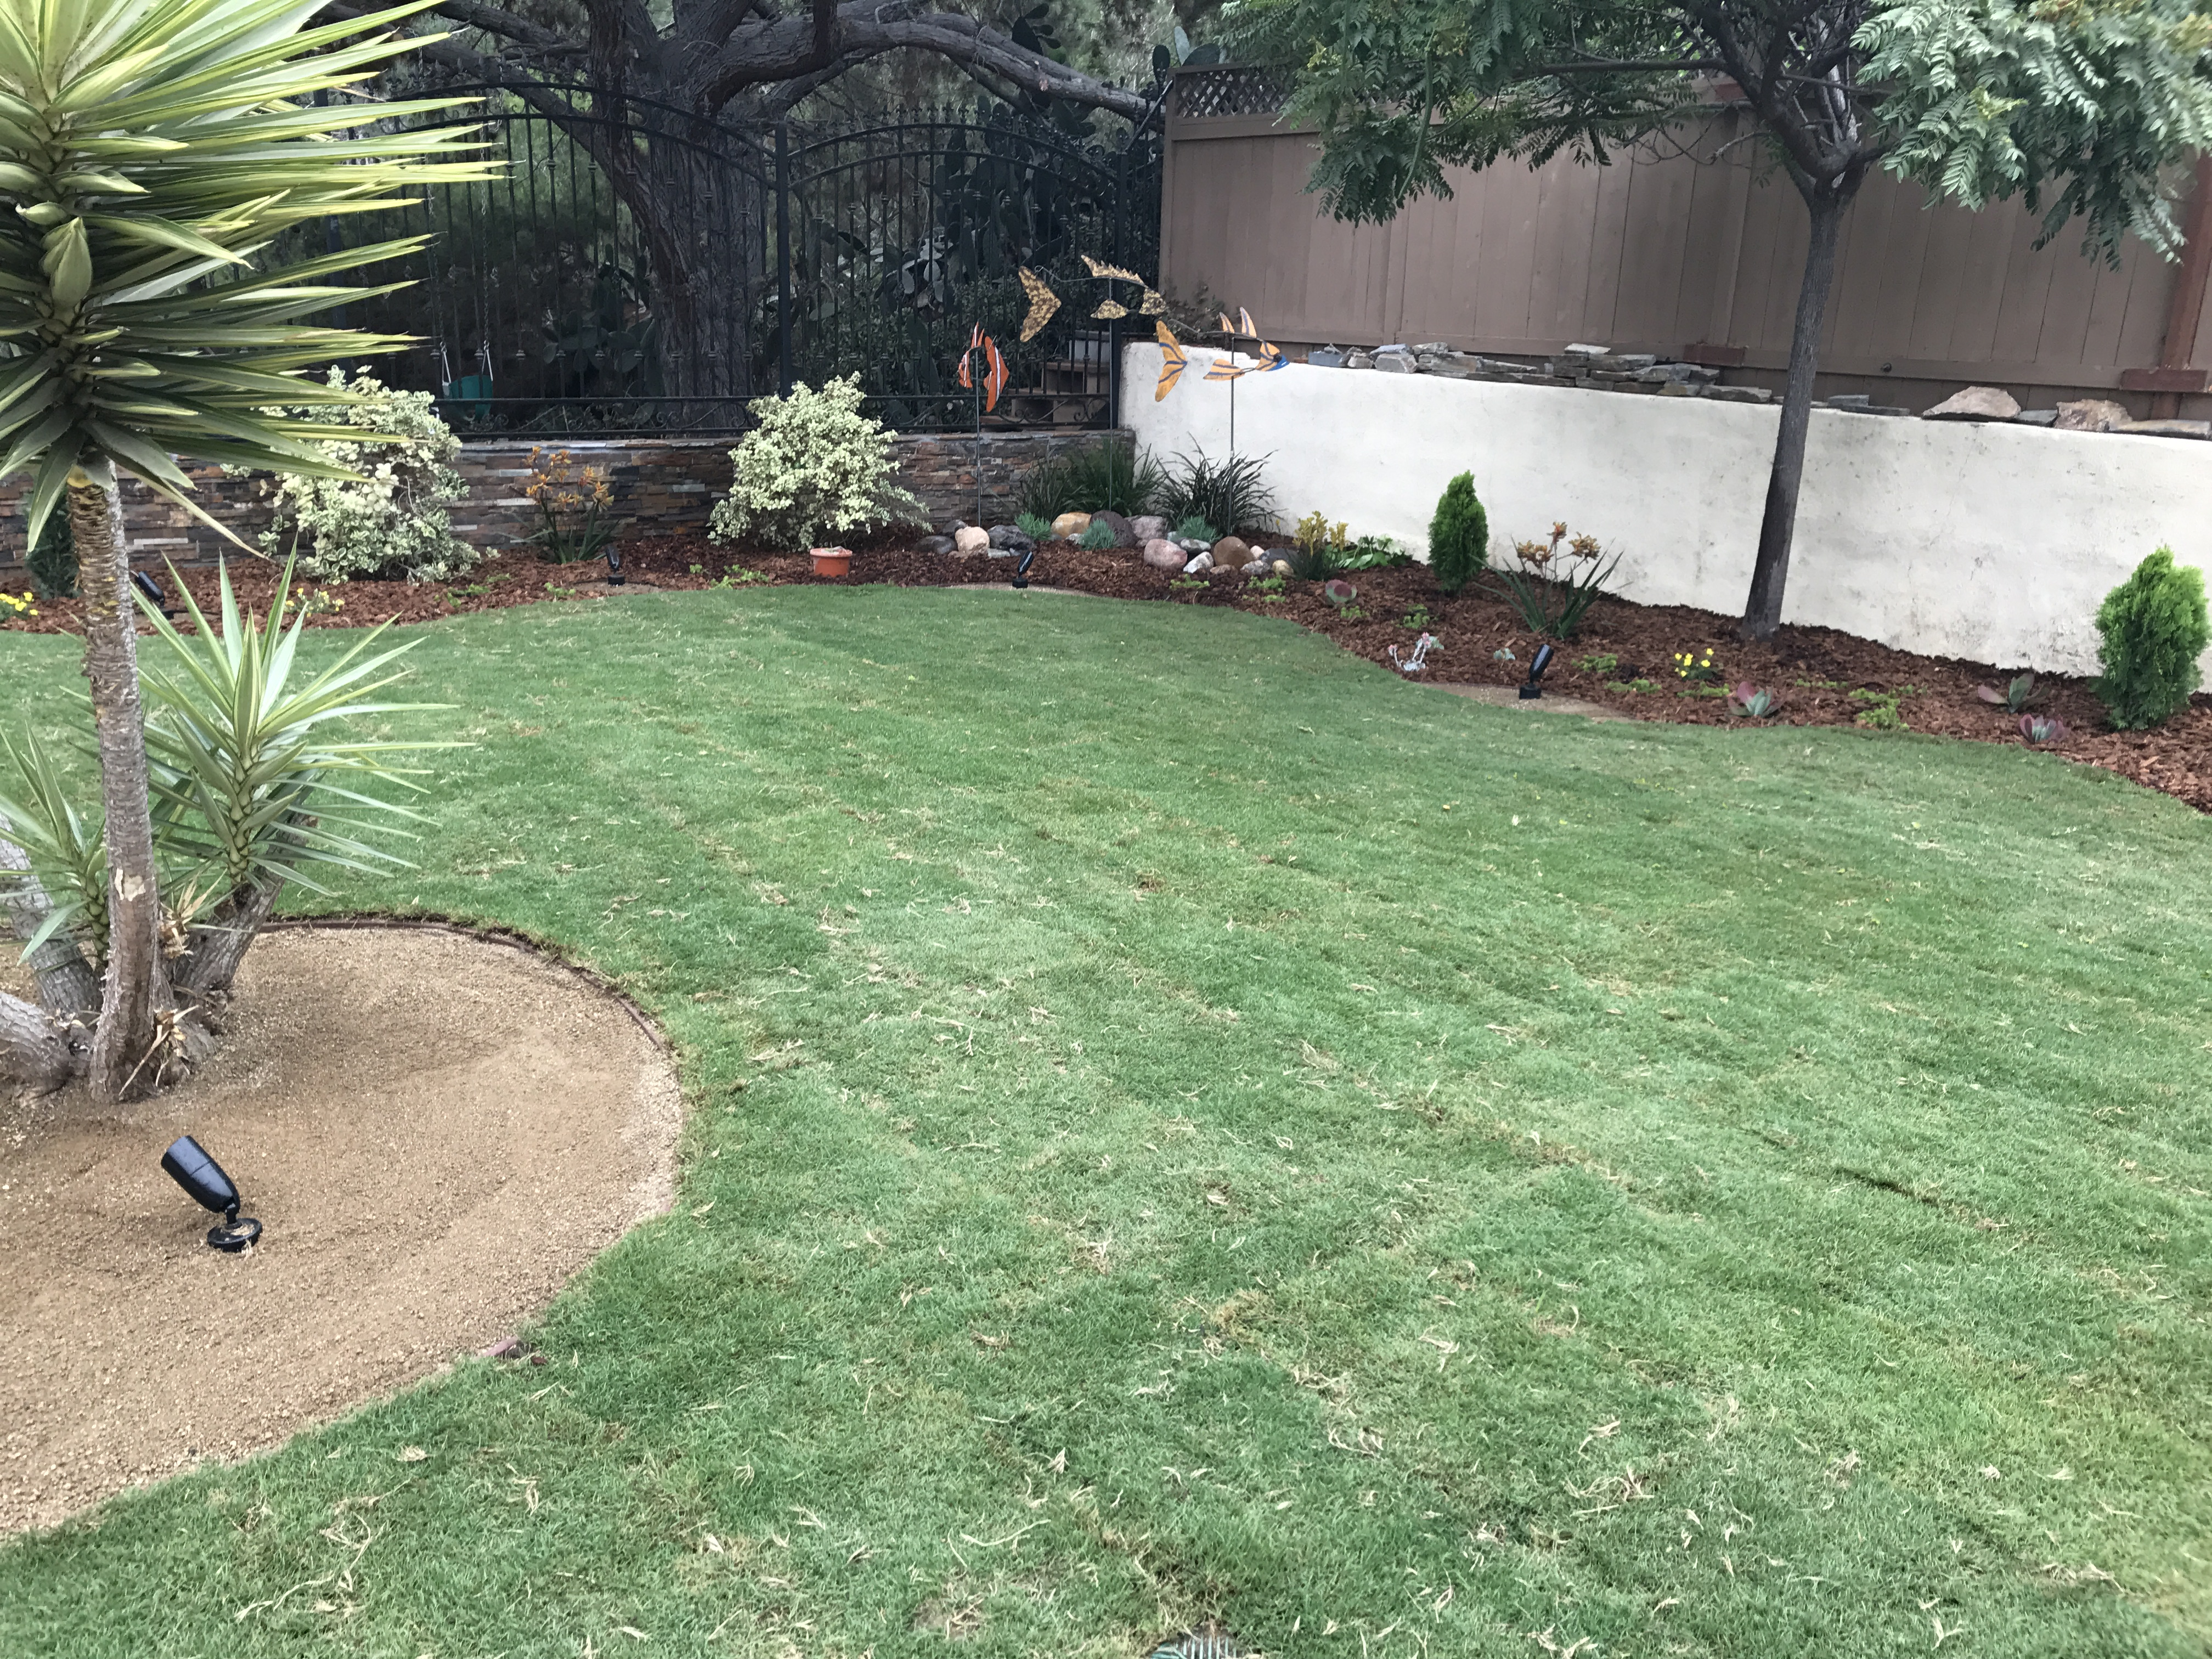 2018 San Diego Landscape Contractors, Maintenance And Design Services. All  Rights Reserved.